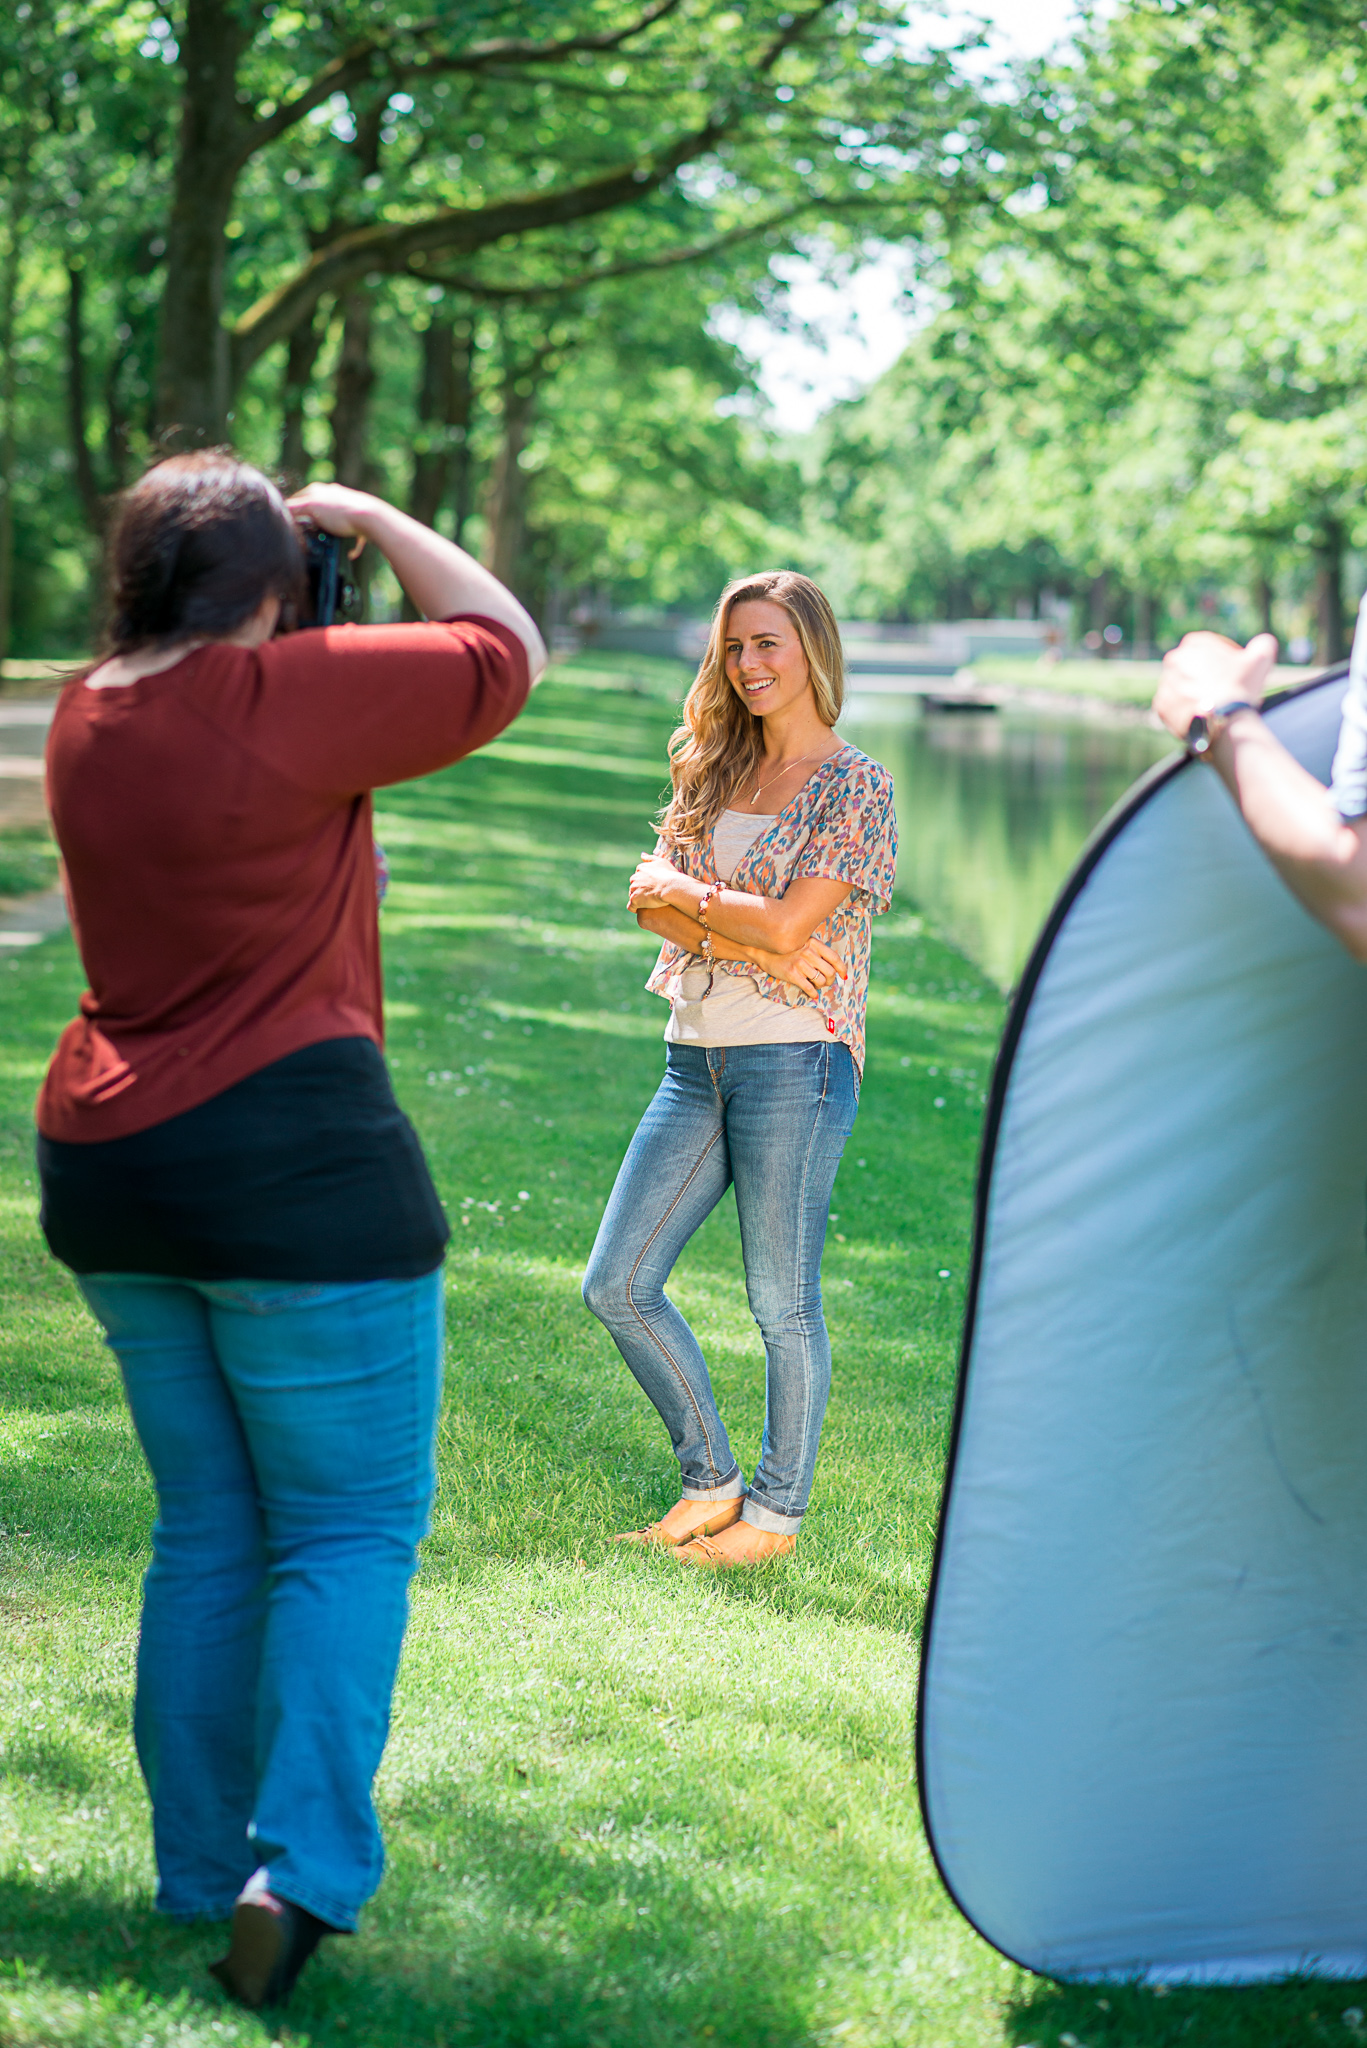 Portraitkurs behind the scenes-10.jpg